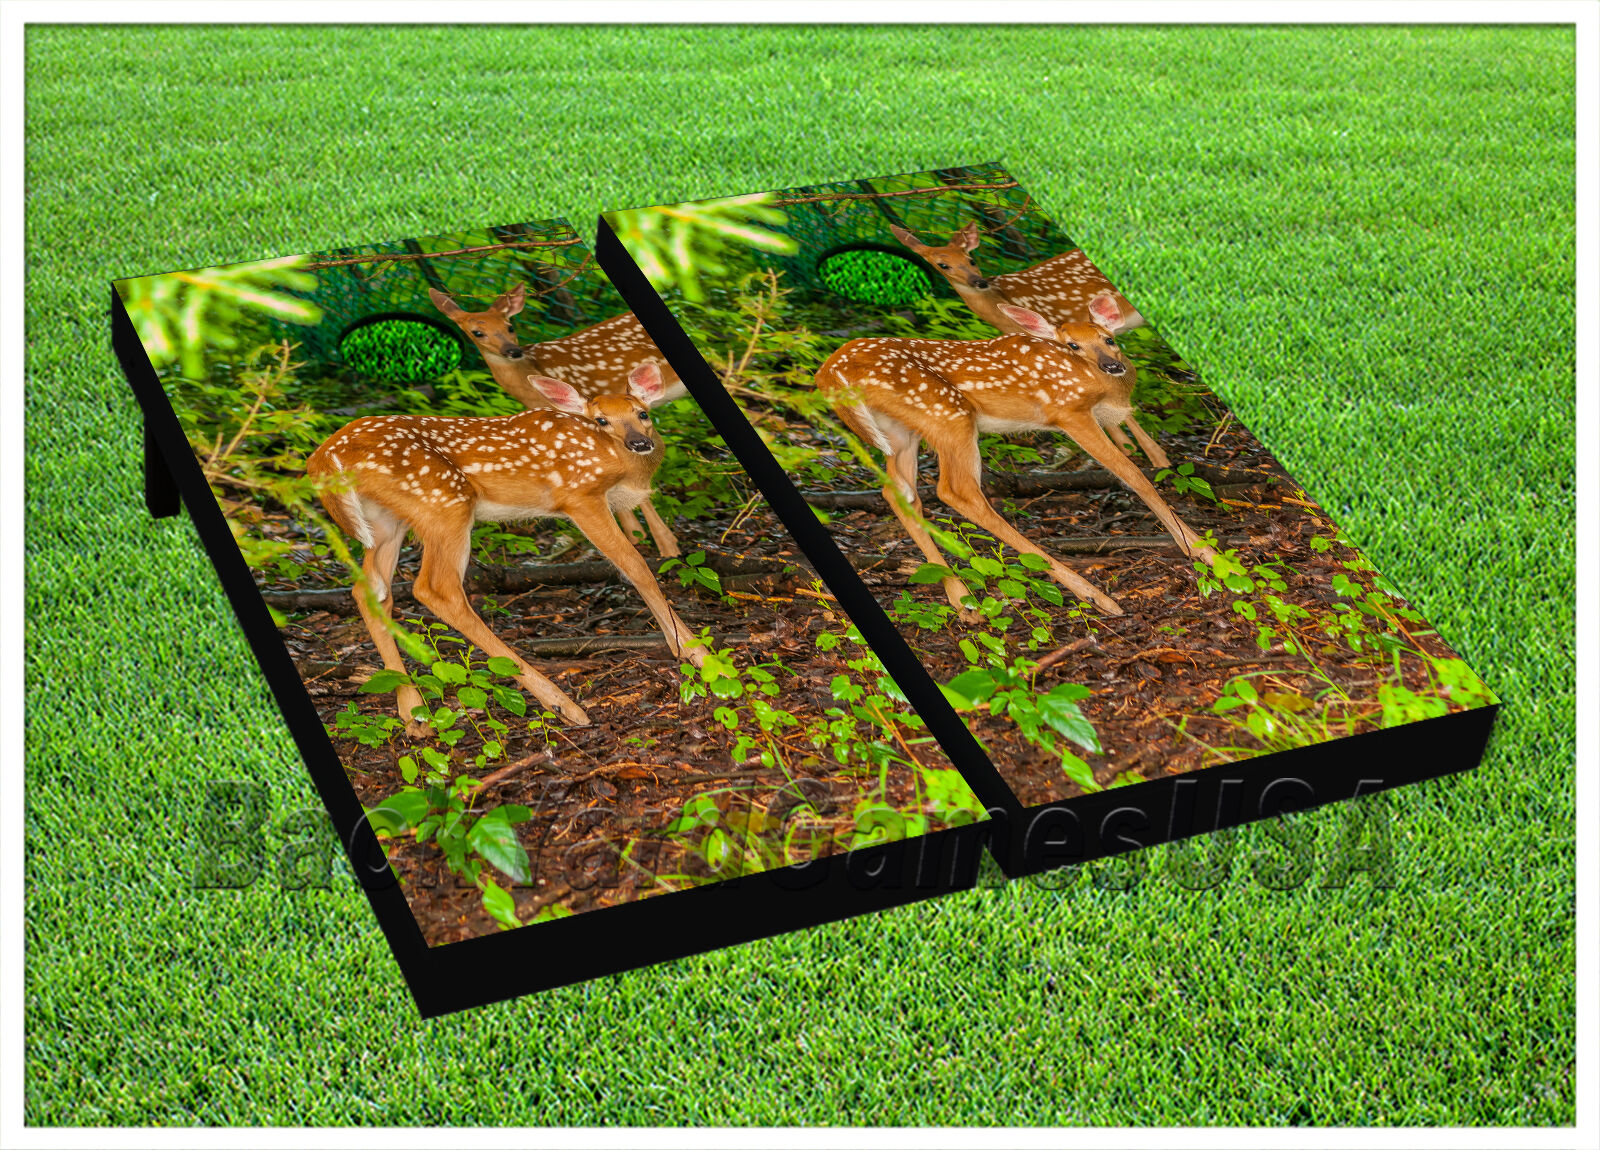 CORNHOLE BEANTasche TOSS GAME w Tasches Game Boards Deer Hunting Nature Wild Set 1237